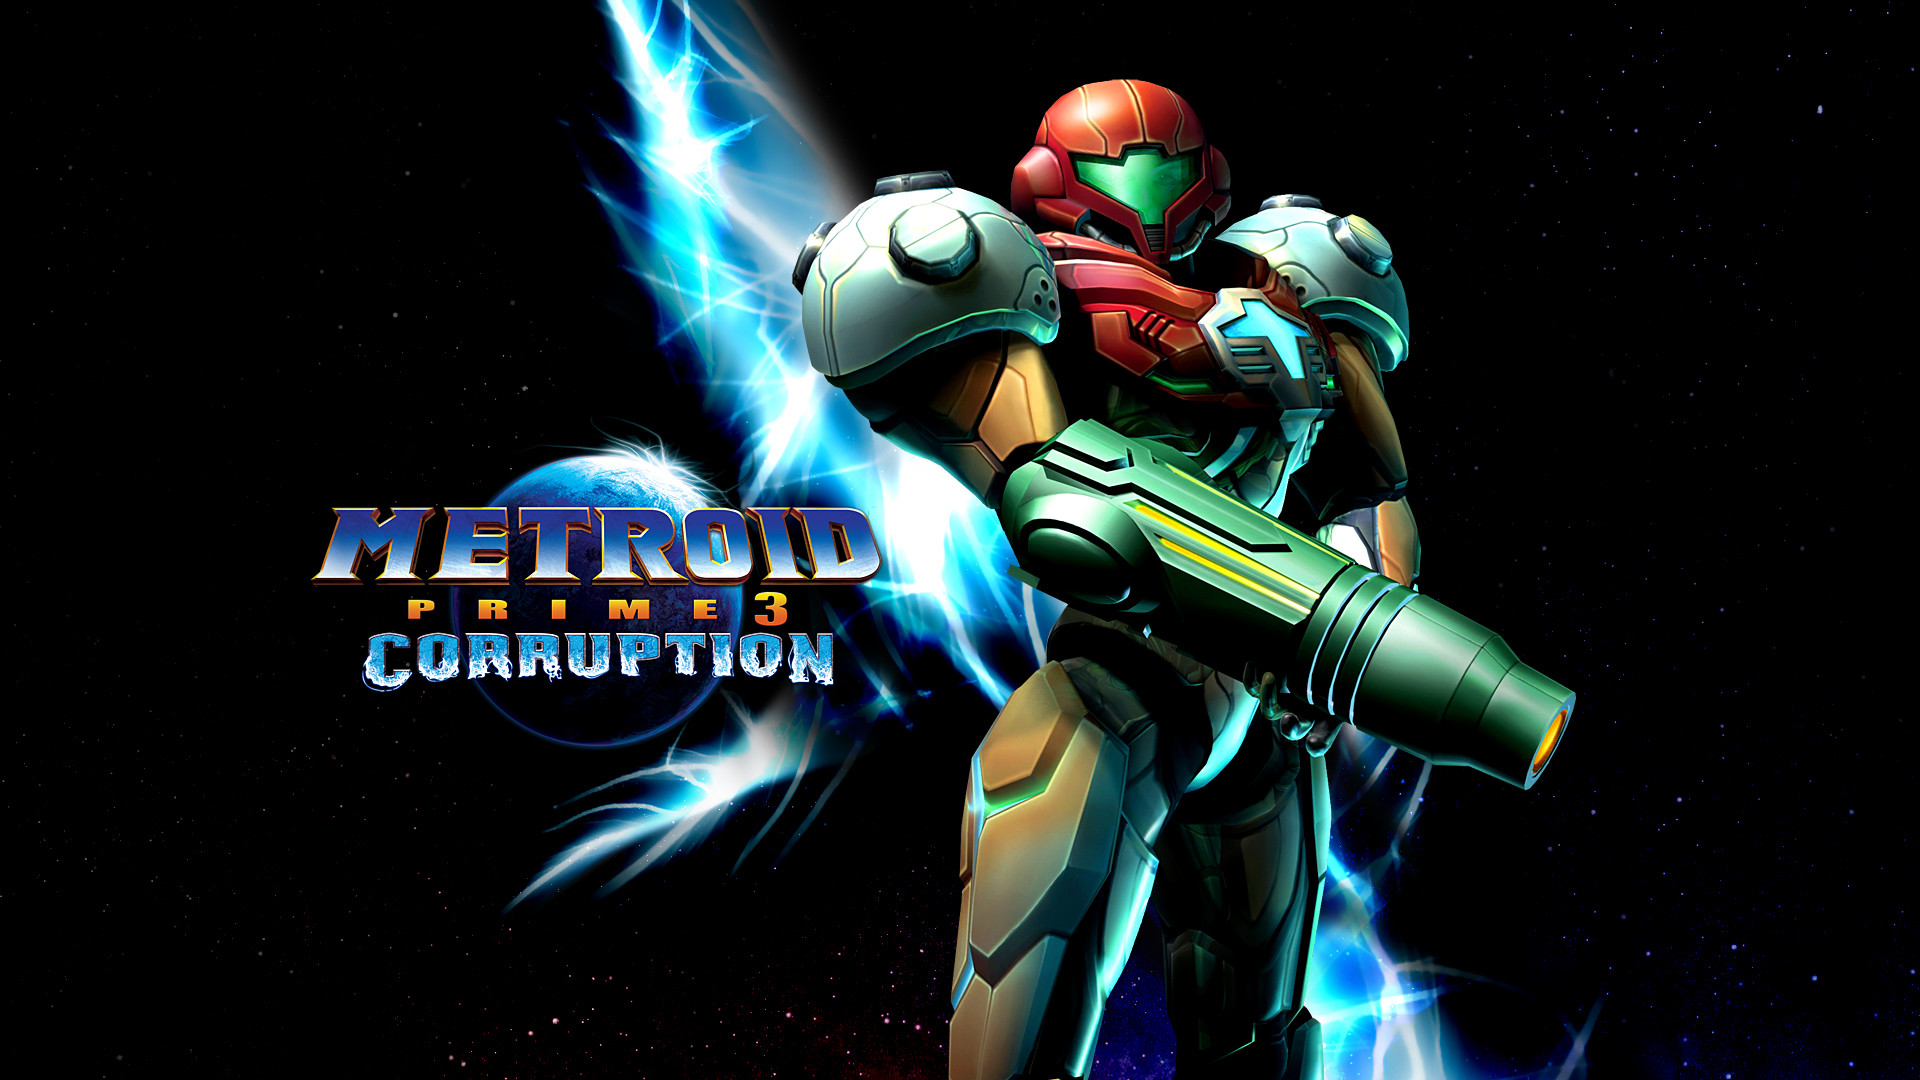 1920x1080 Video Game - Metroid Prime 3: Corruption Wallpaper